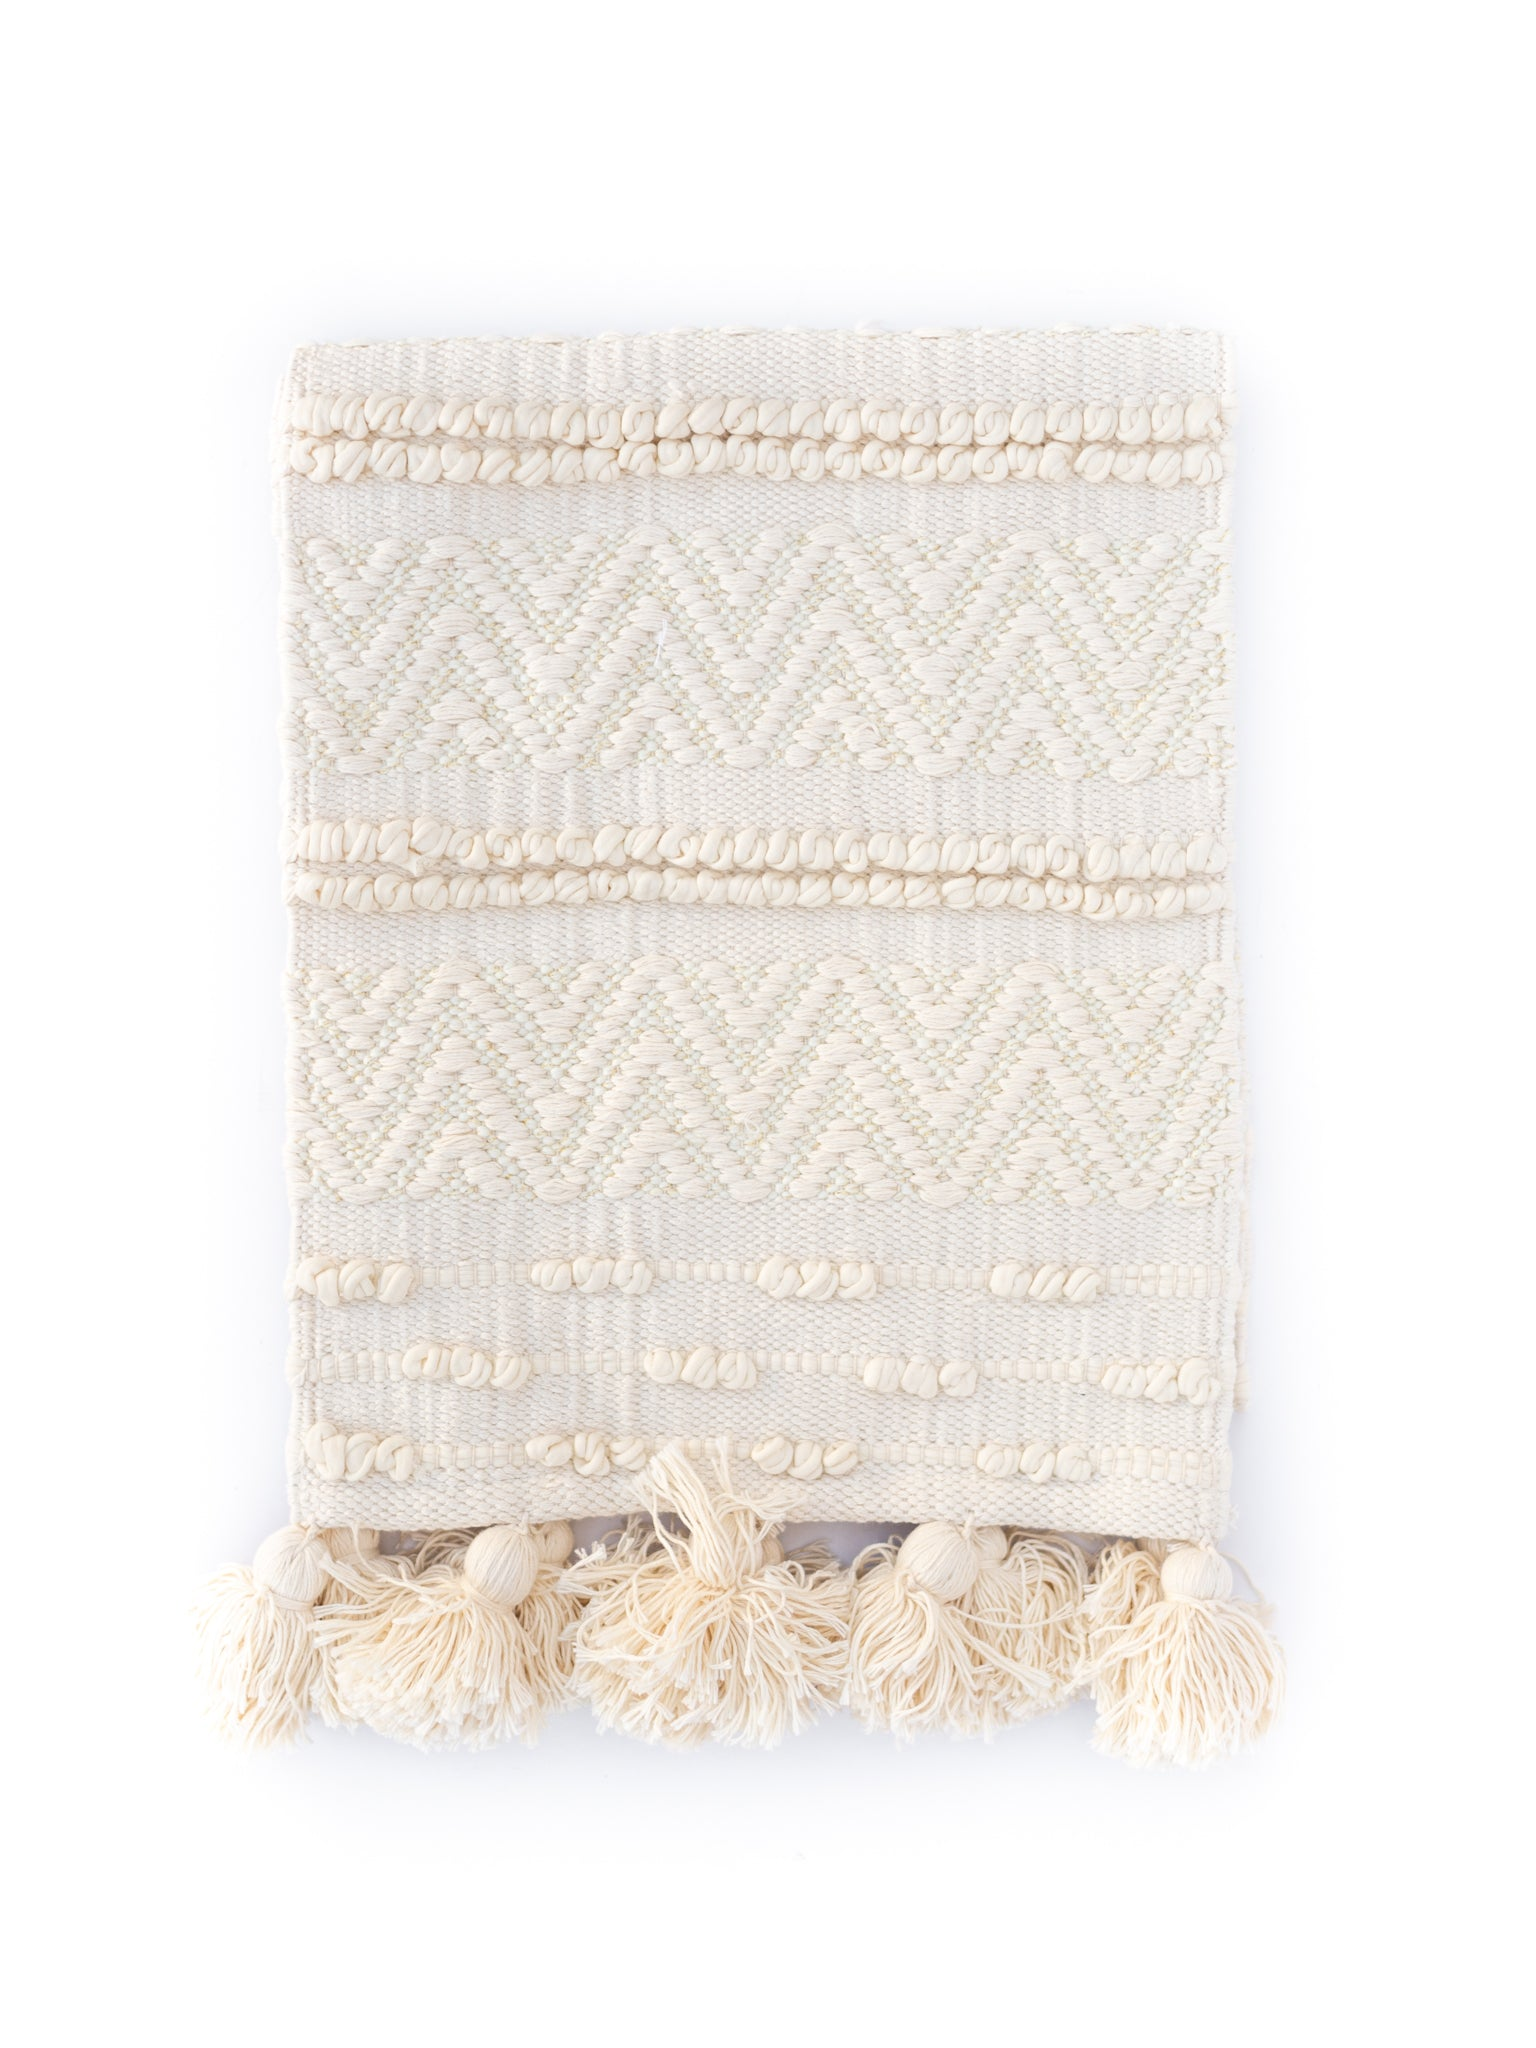 Woven Cotton Textured Runner